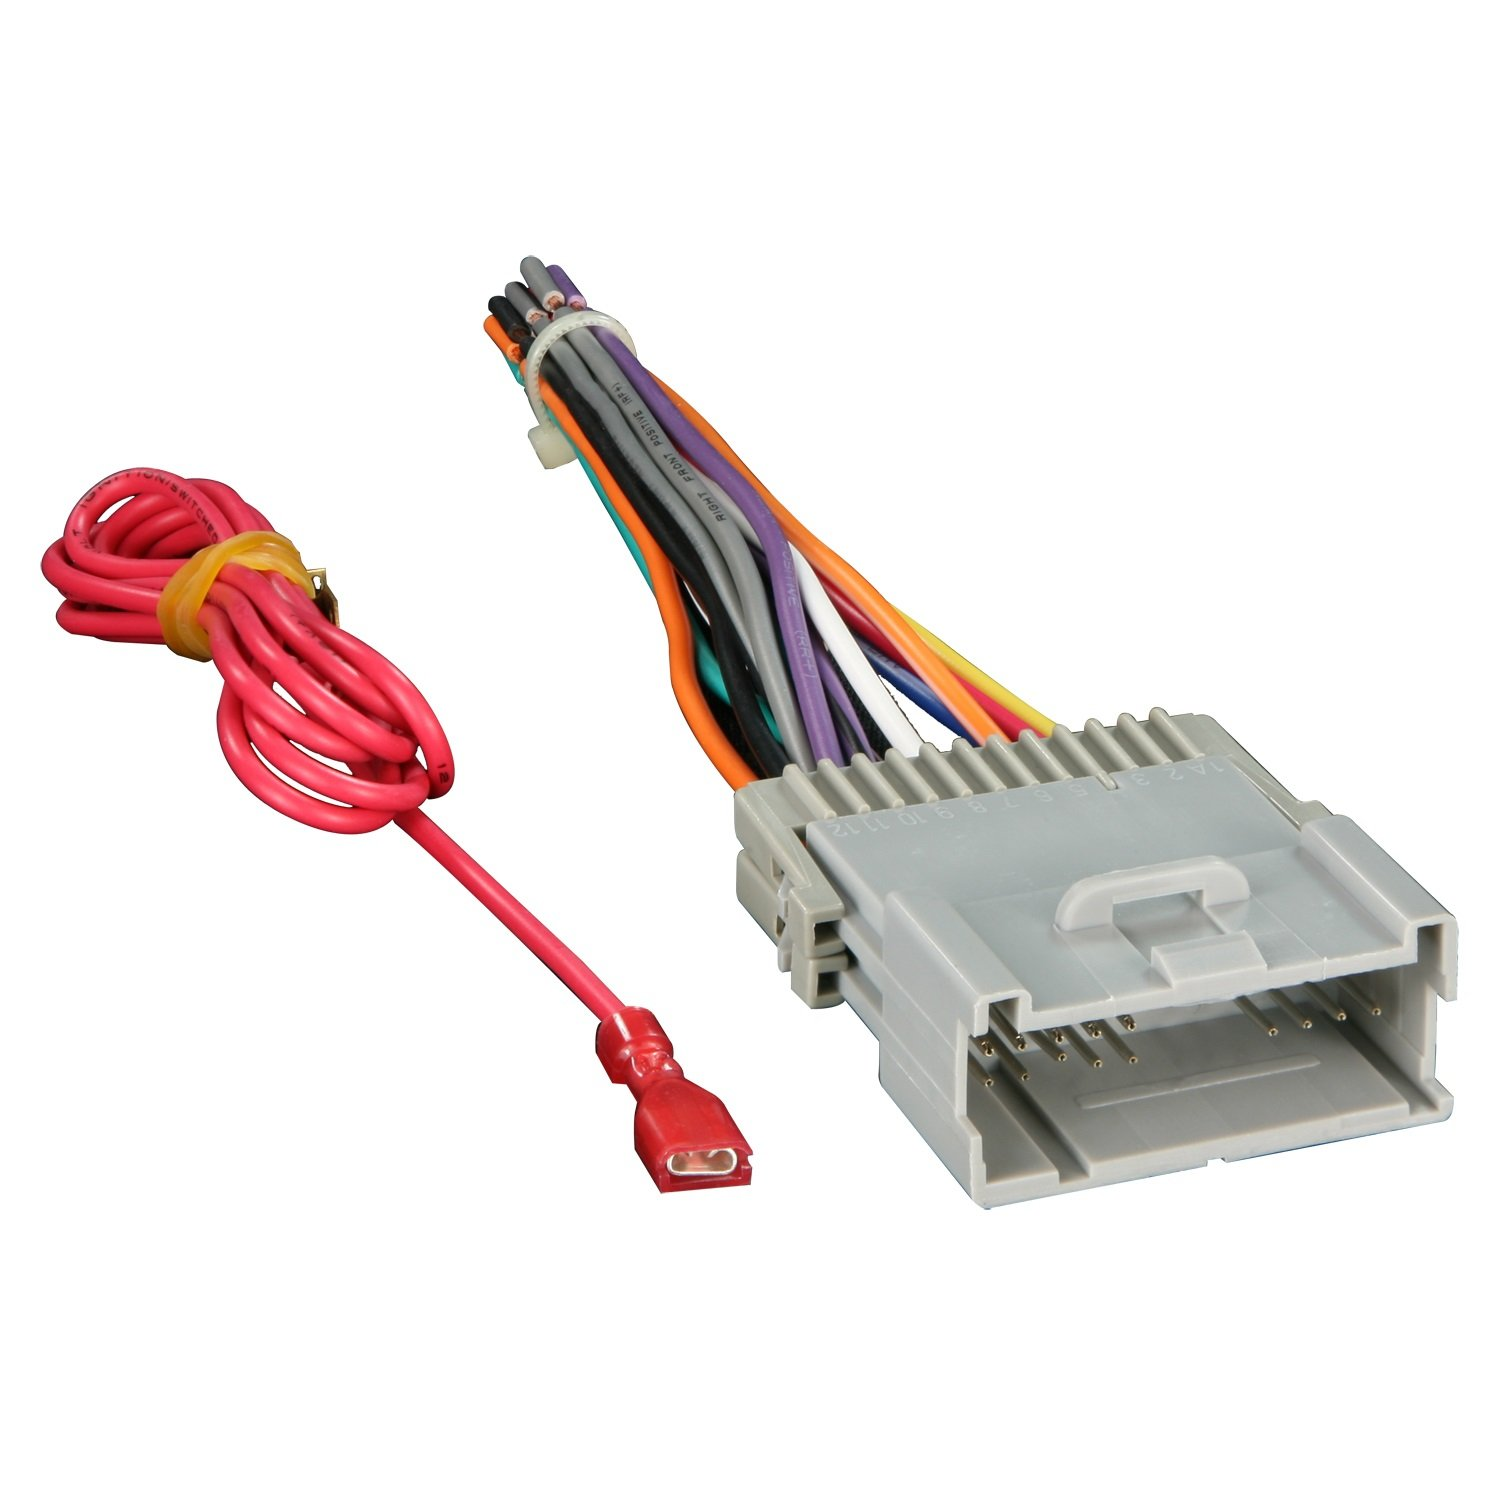 61eewxp9orL._SL1500_ amazon com metra 70 2003 radio wiring harness for gm 98 08 Trailer Wiring Harness Adapter at creativeand.co